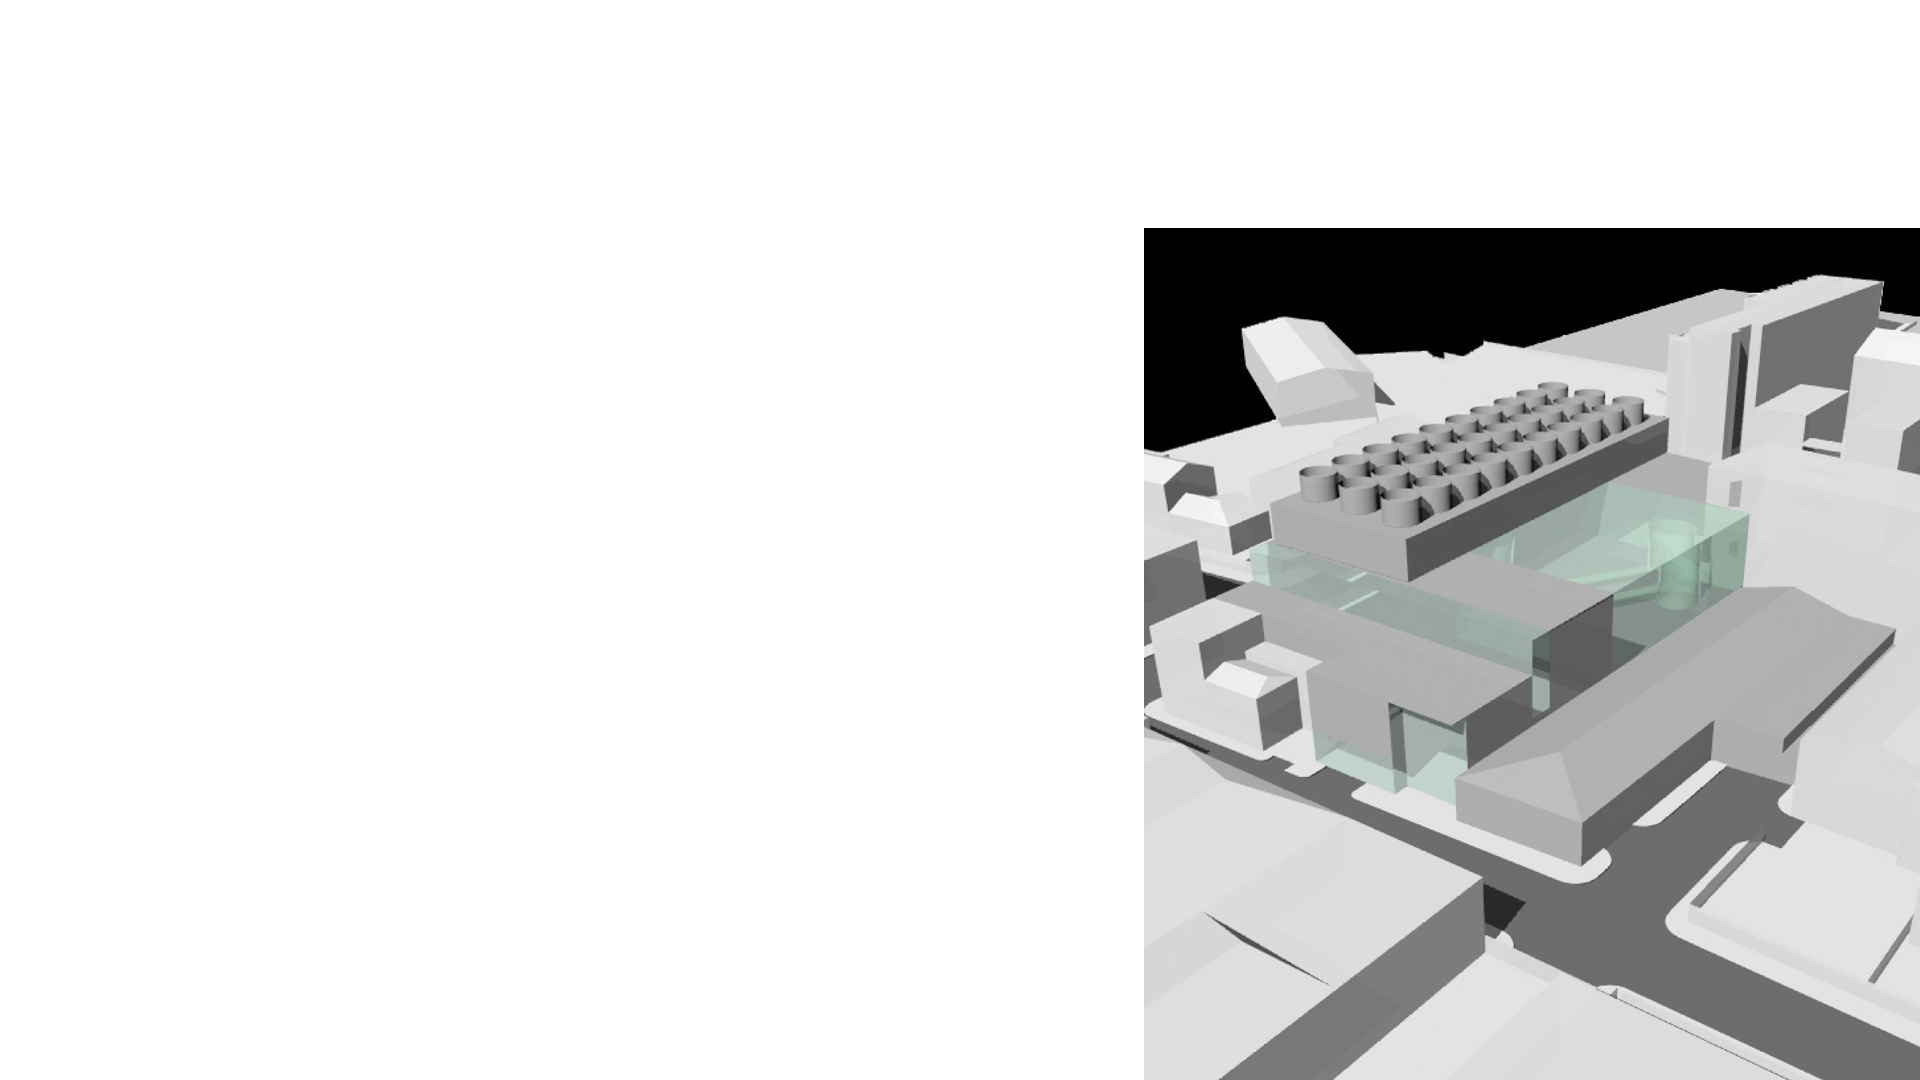 Massing Study for Sculpture Building for the Royal College of Art, Battersea Campus